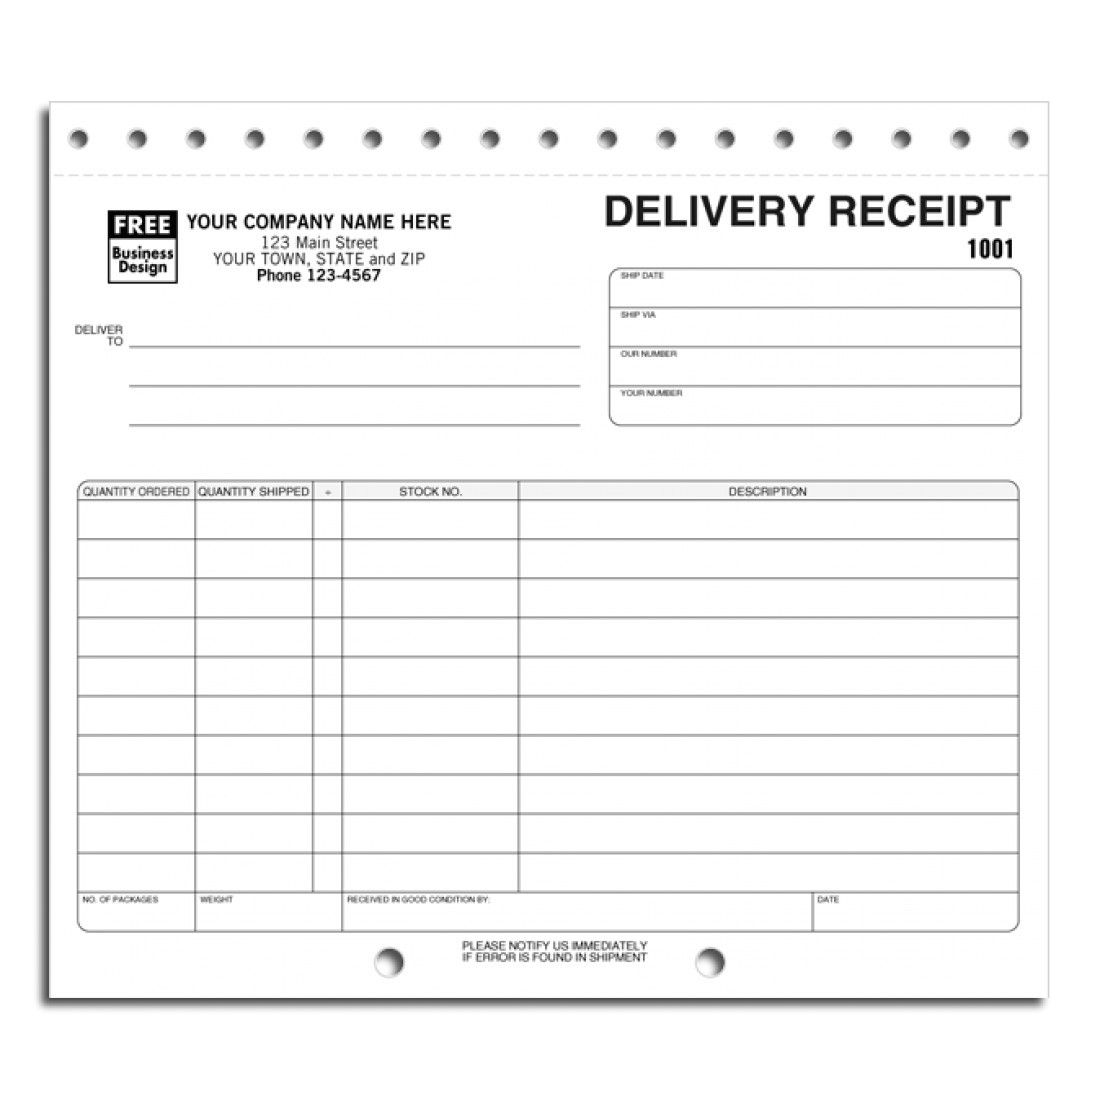 preprinted delivery receipt forms